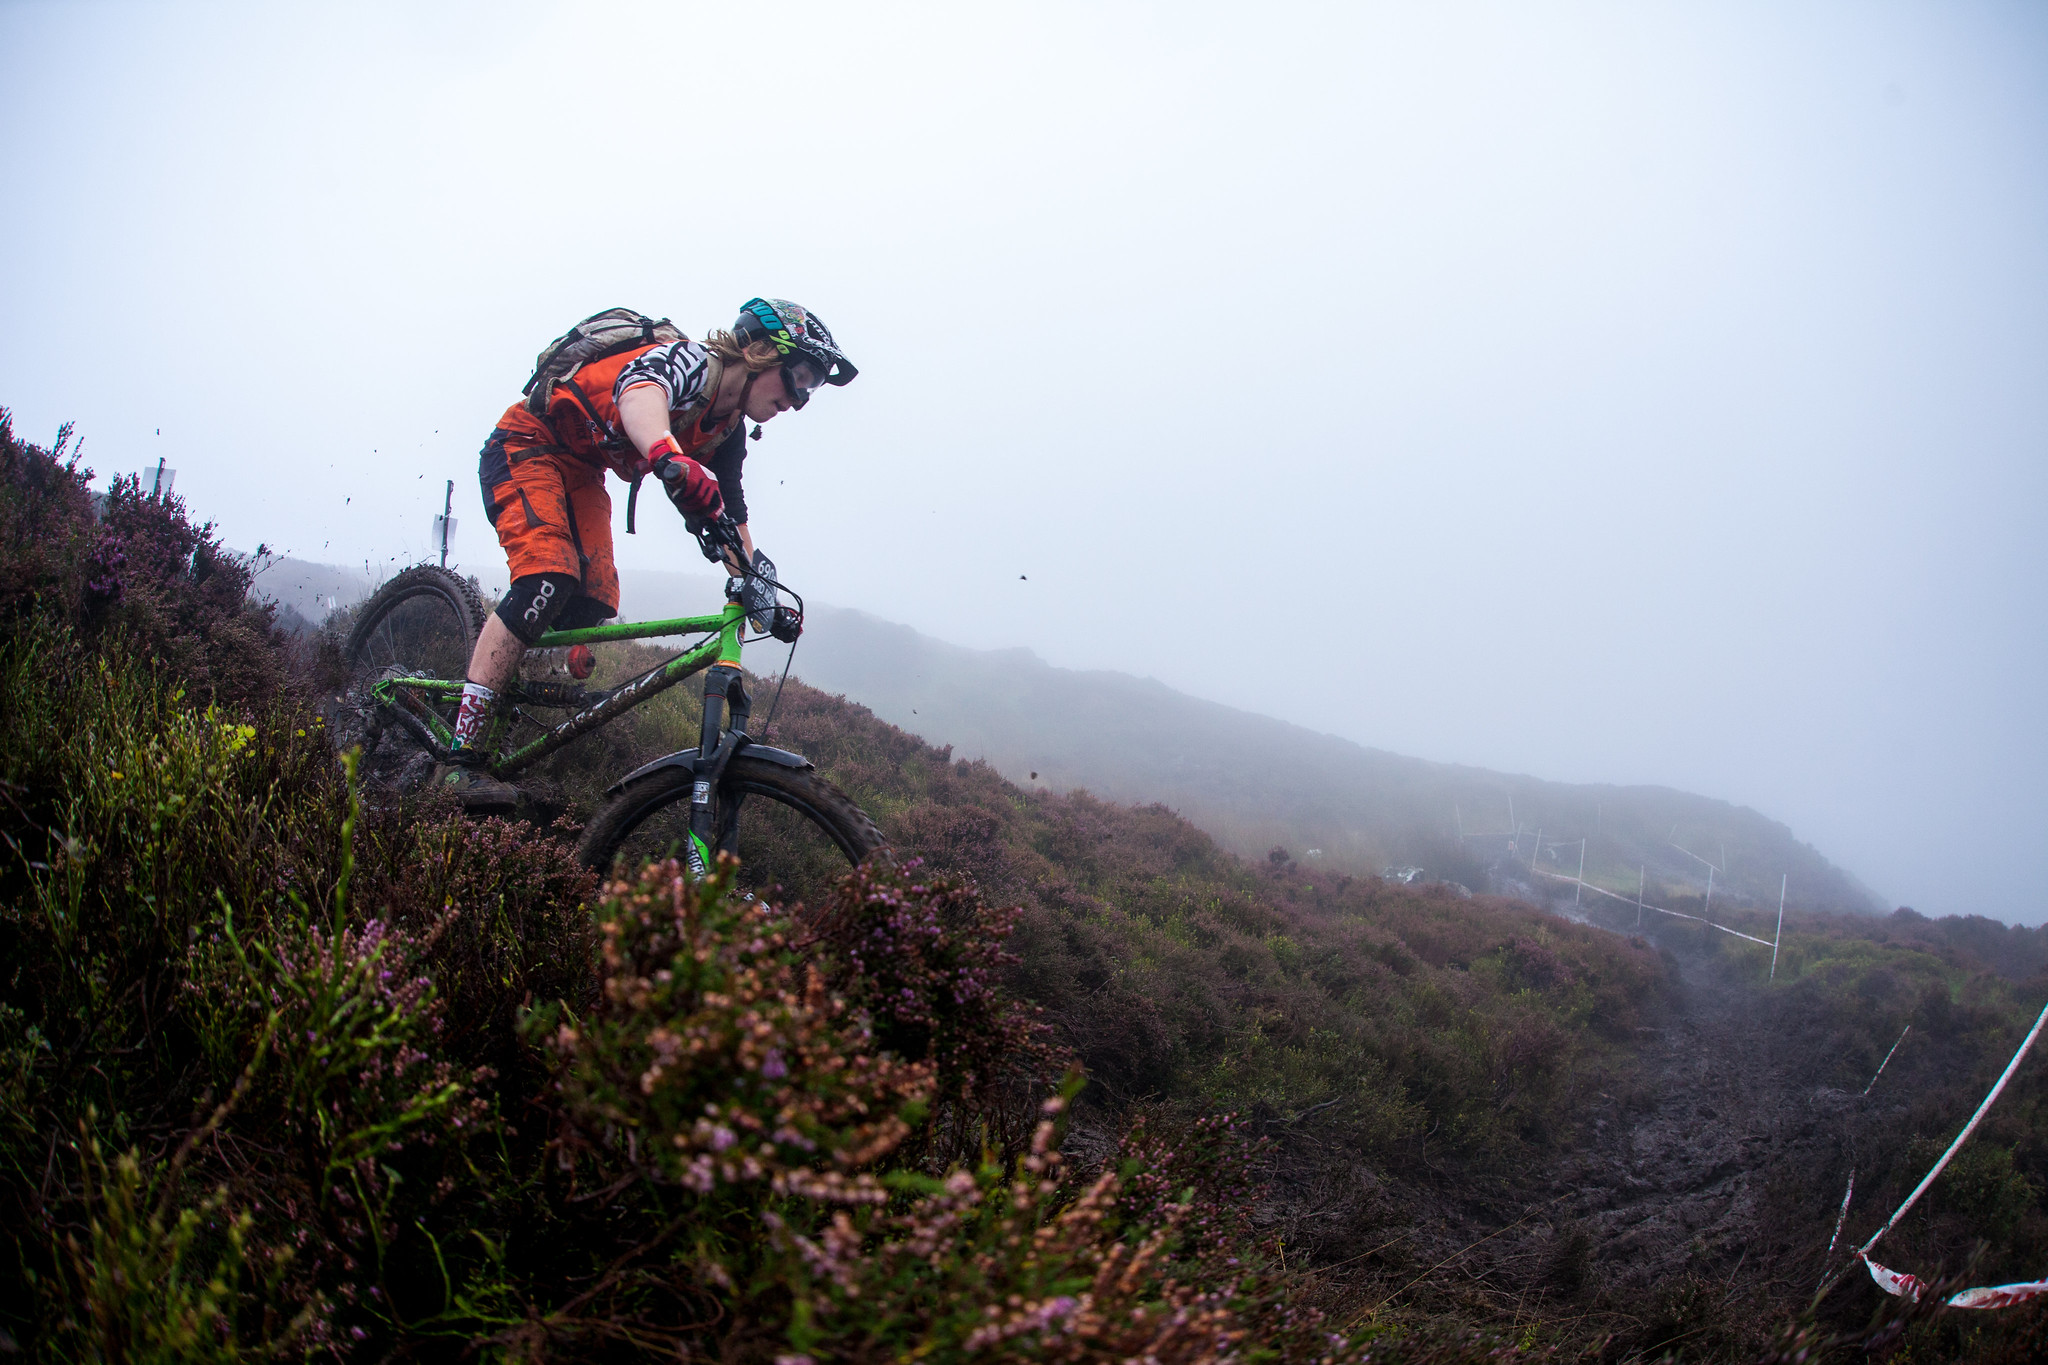 Wes Fife at Ard Moors